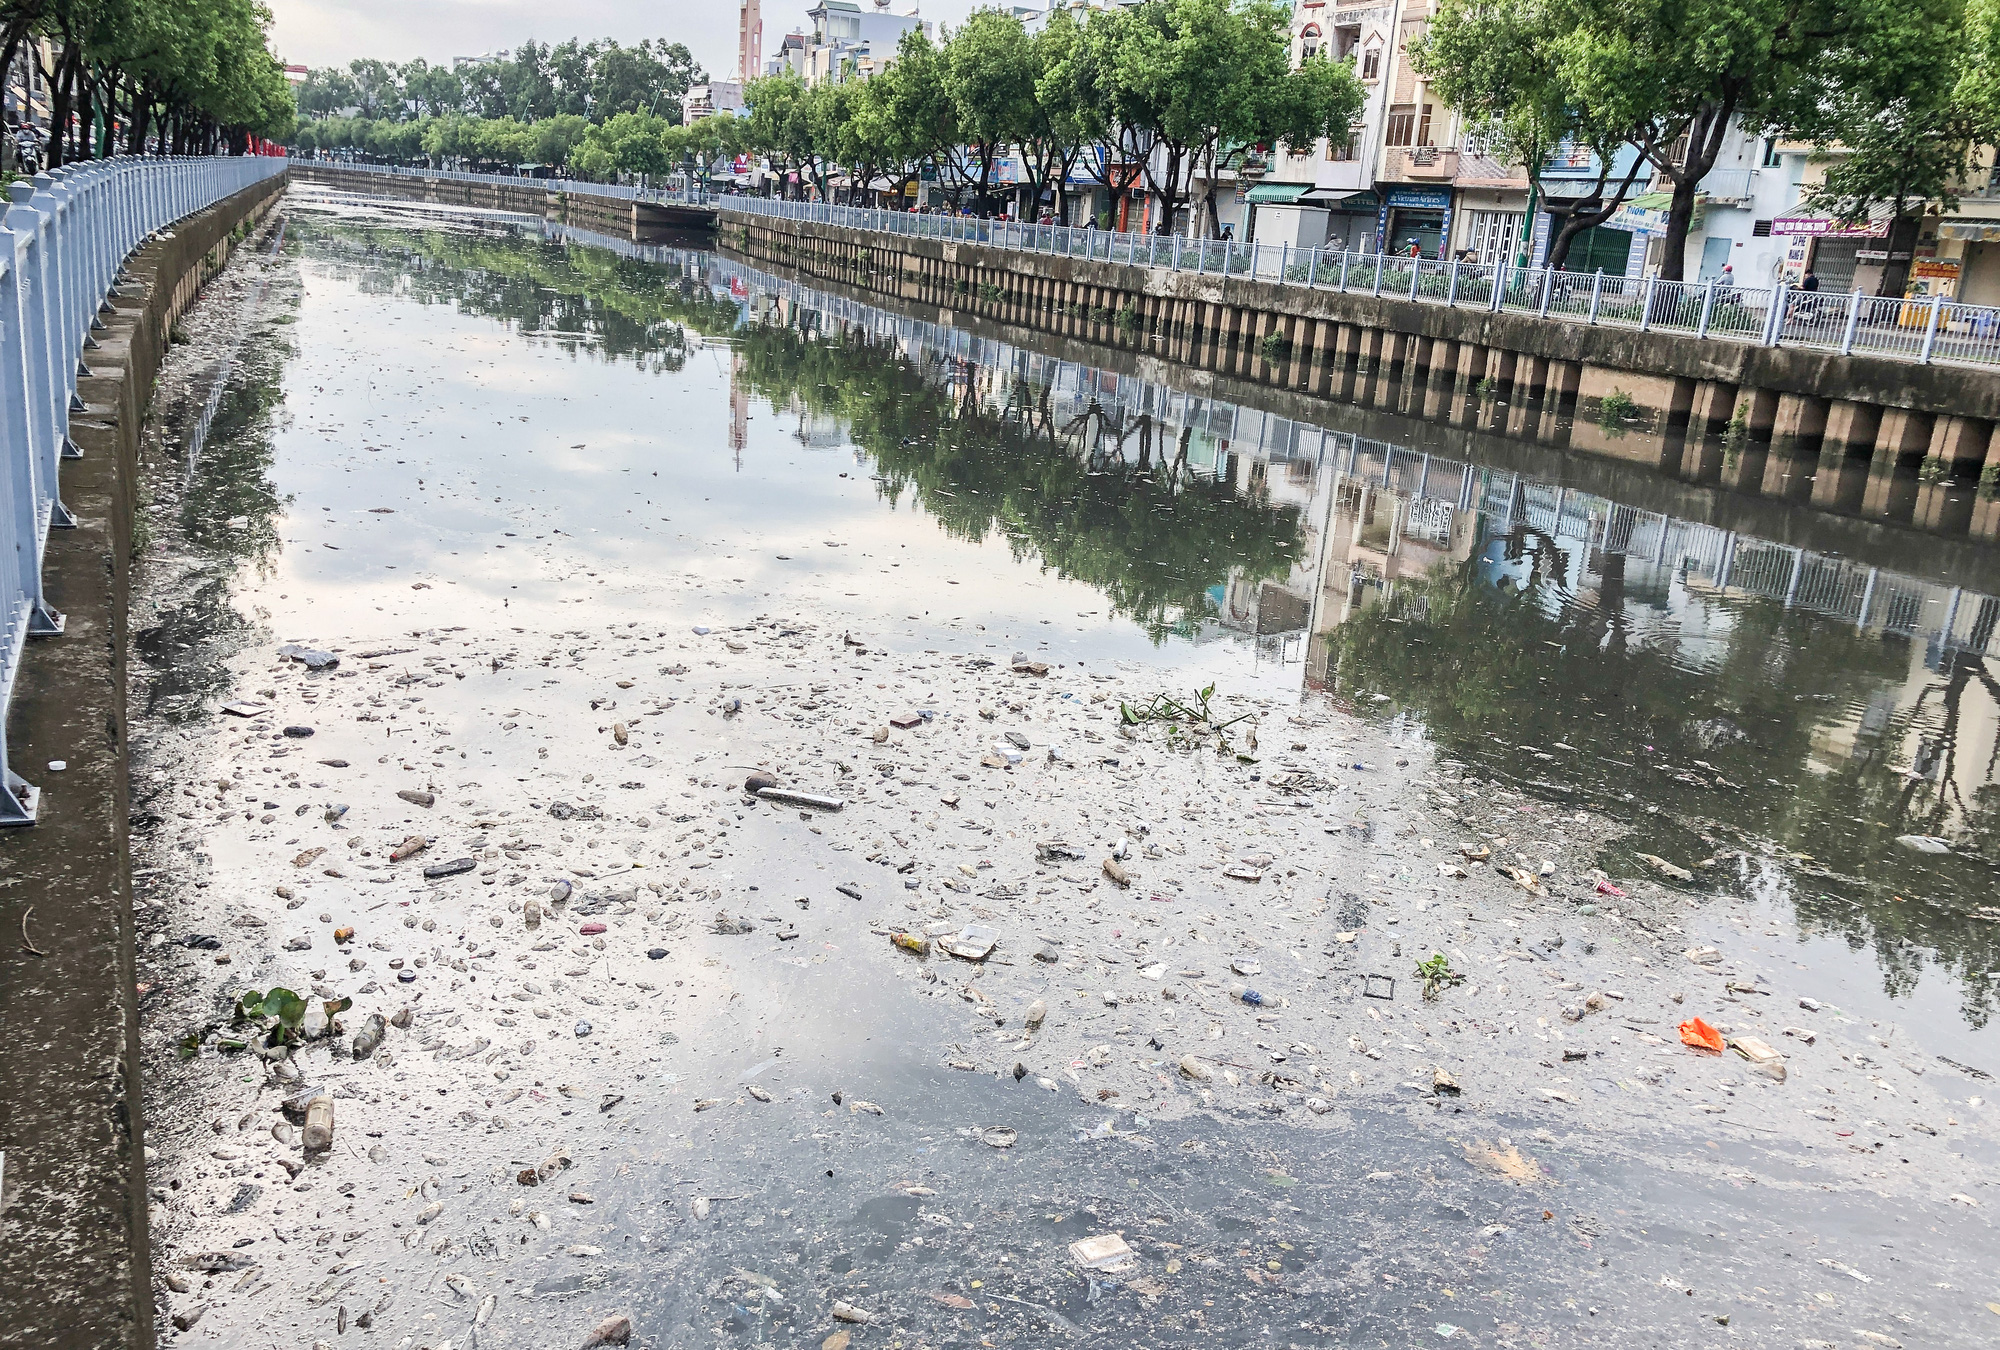 The mass fish death results in unpleasant smell along Nhieu Loc - Thi Nghe Canal in Ho Chi Minh City, April 4, 2021. Photo: Chau Tuan / Tuoi Tre